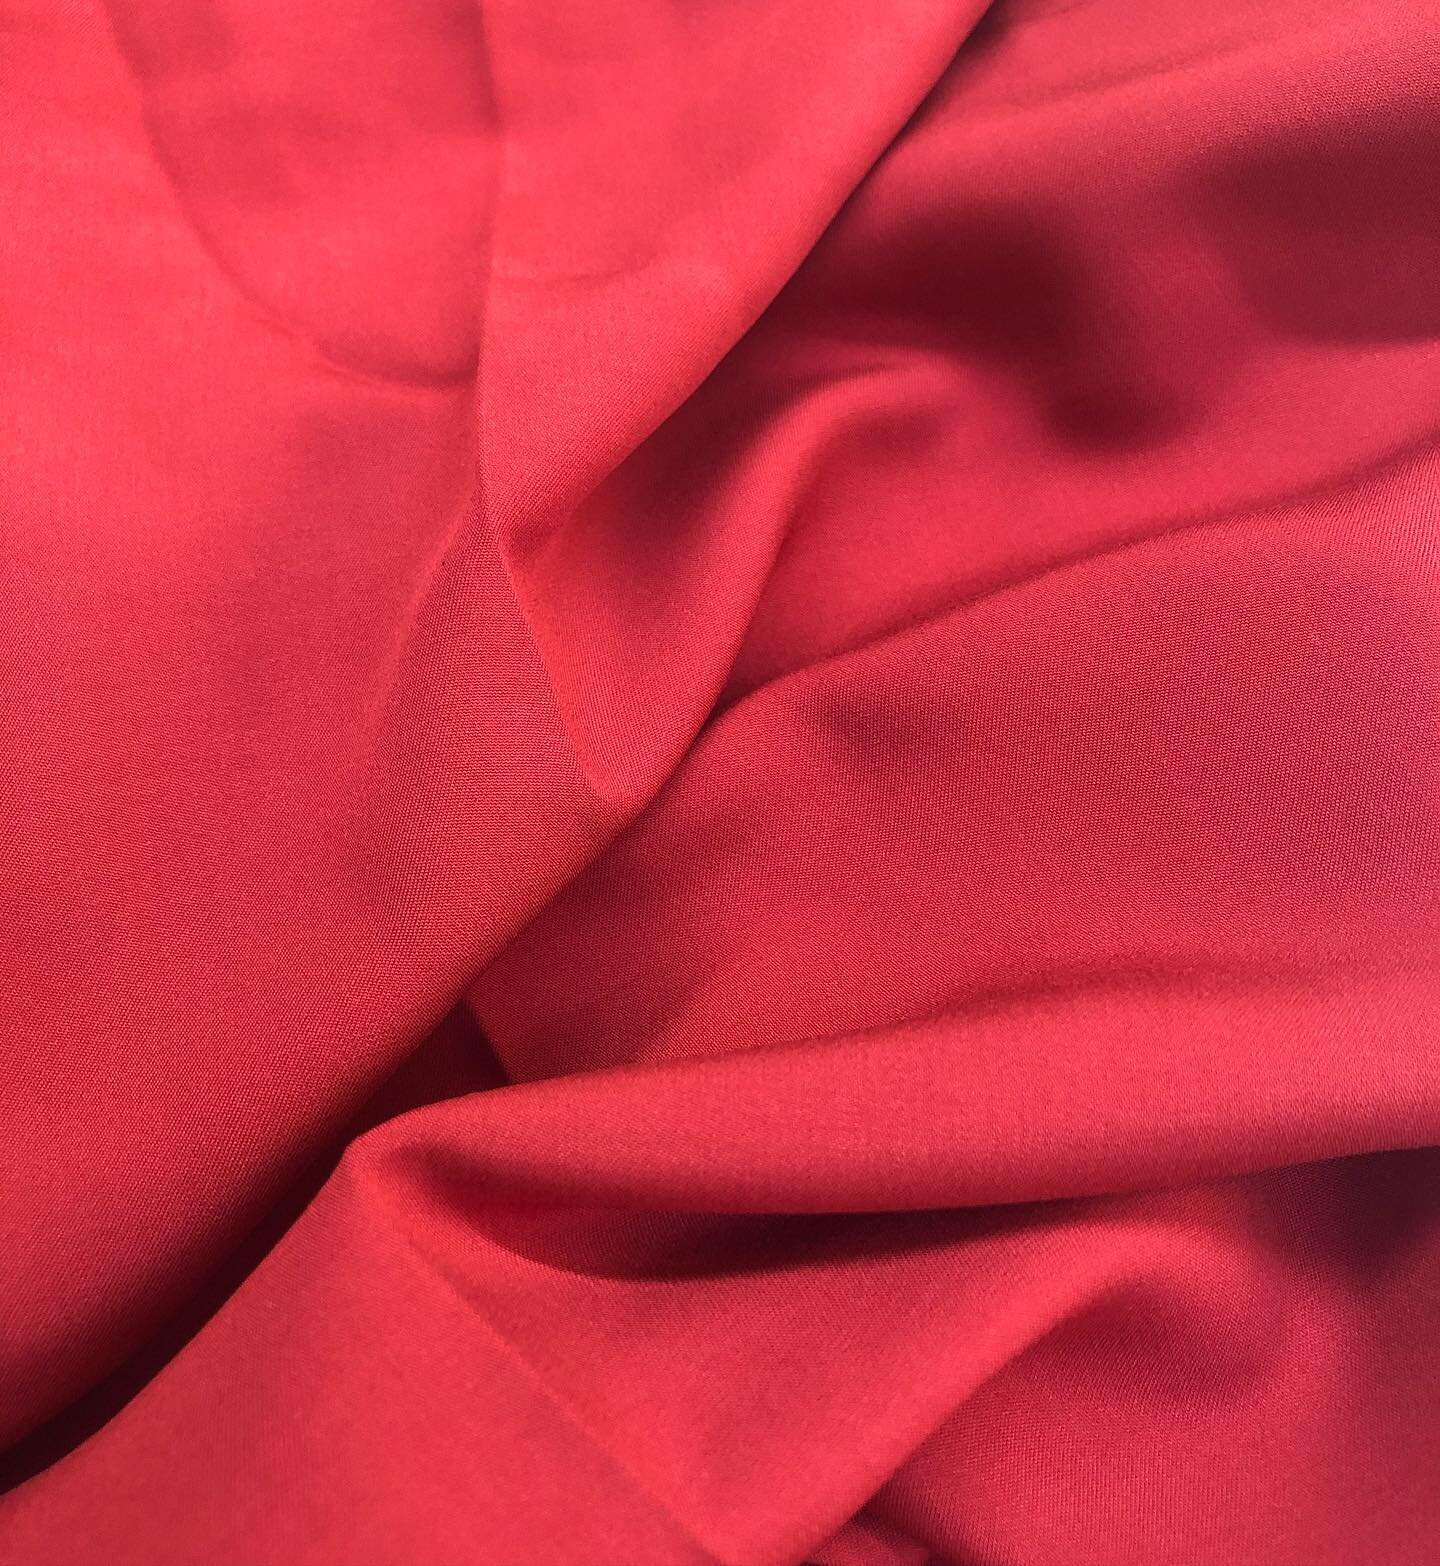 100% Bamboo Silk - Click here to find out how Rose's Wardrobe chooses its fabrics